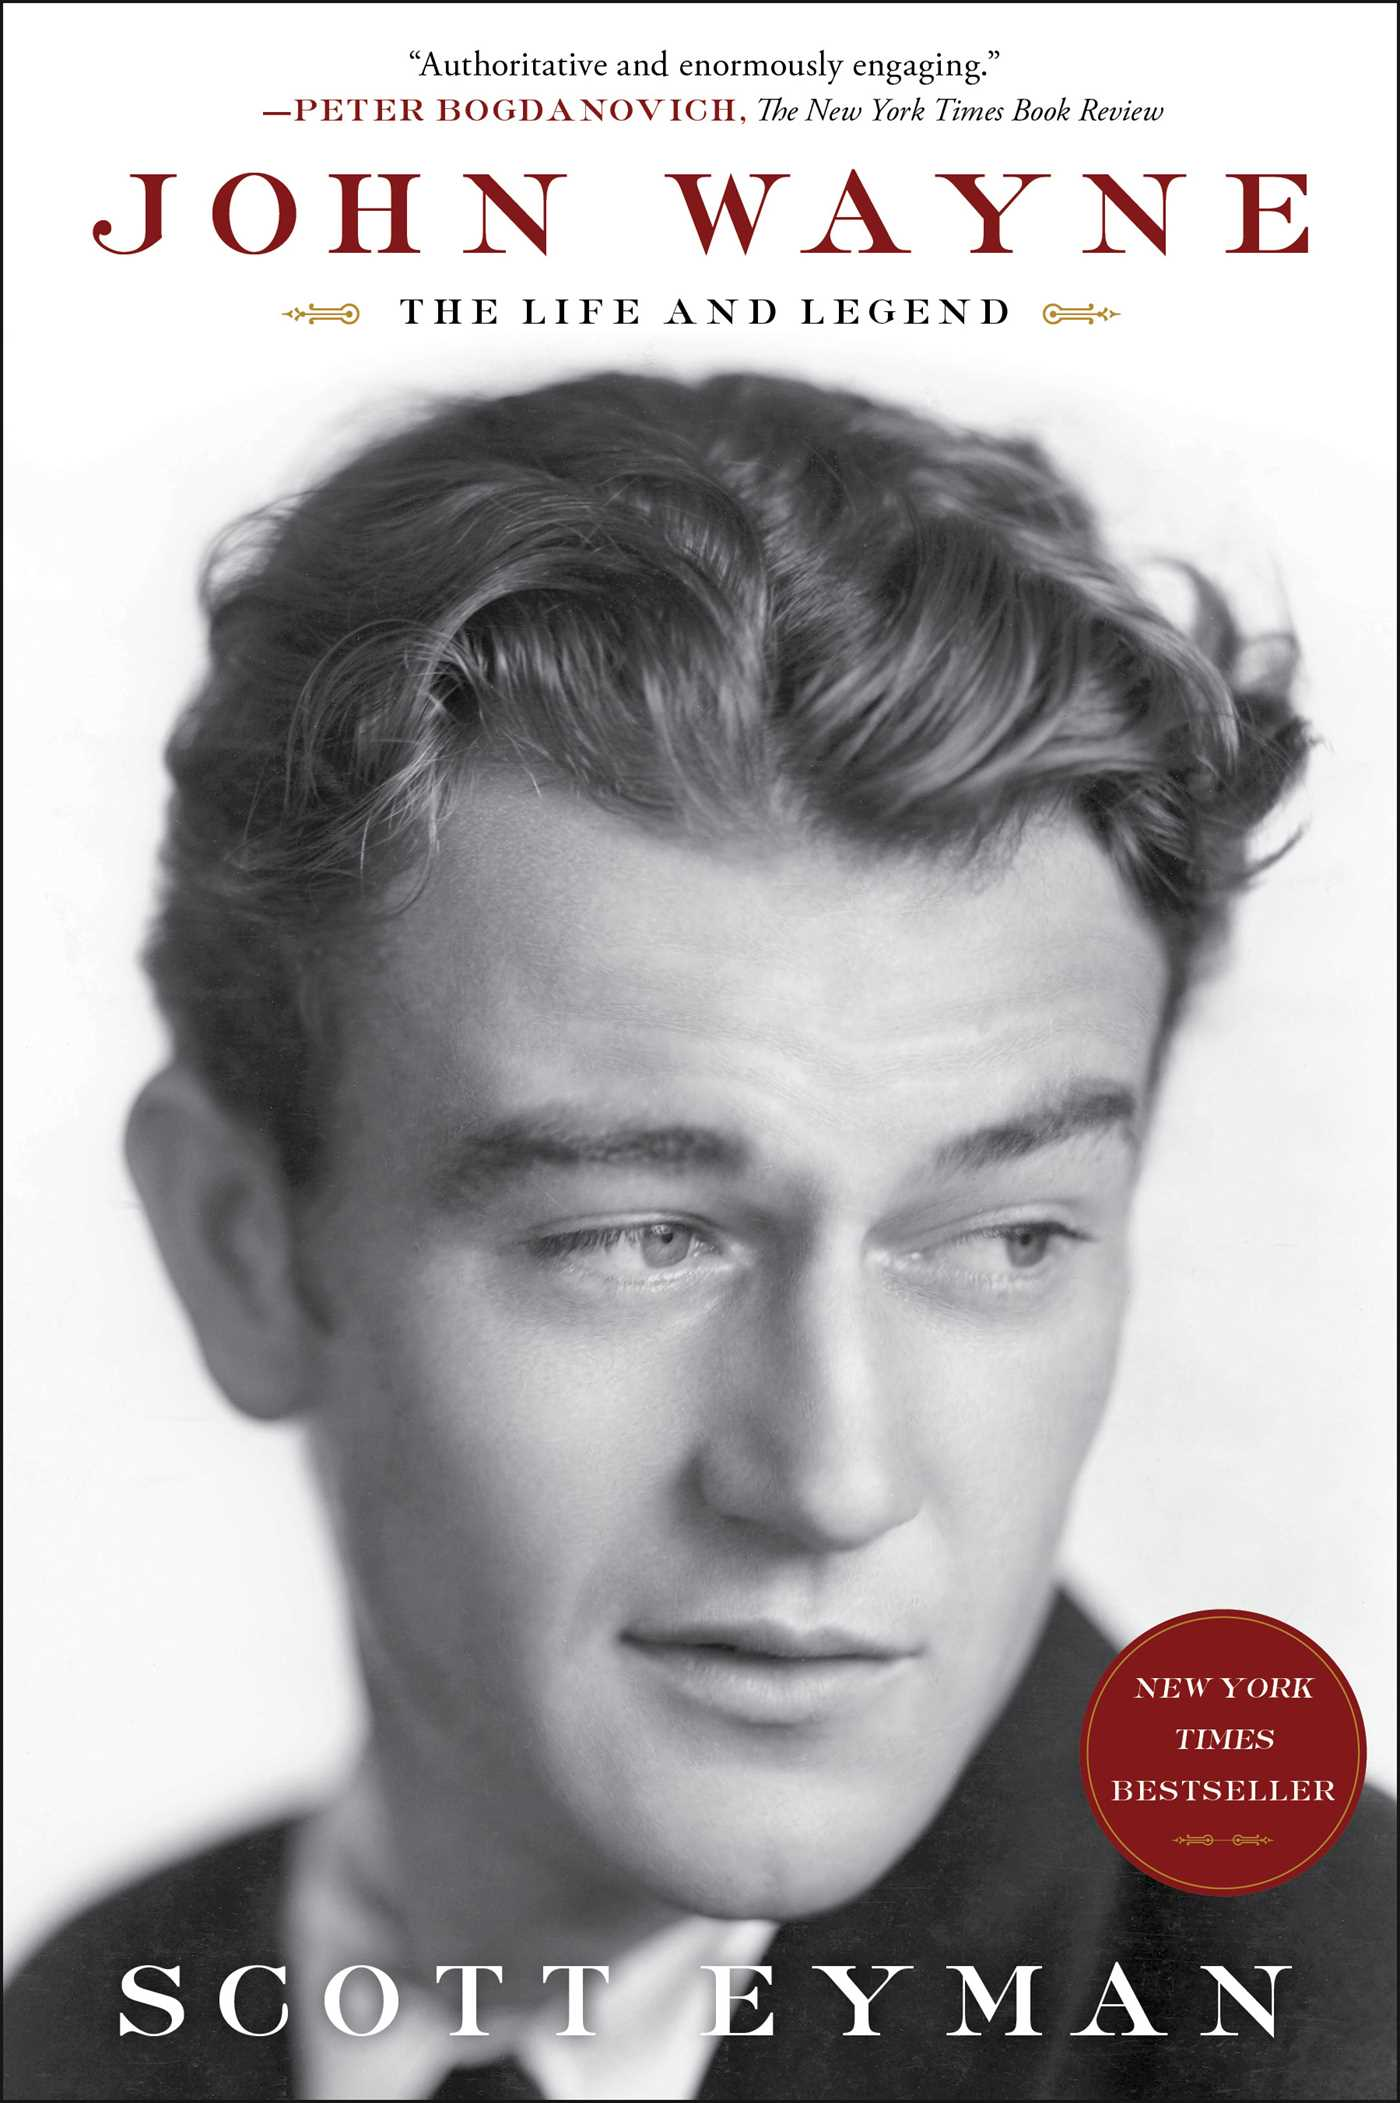 John Wayne: The Life and Legend | Book by Scott Eyman | Official ...